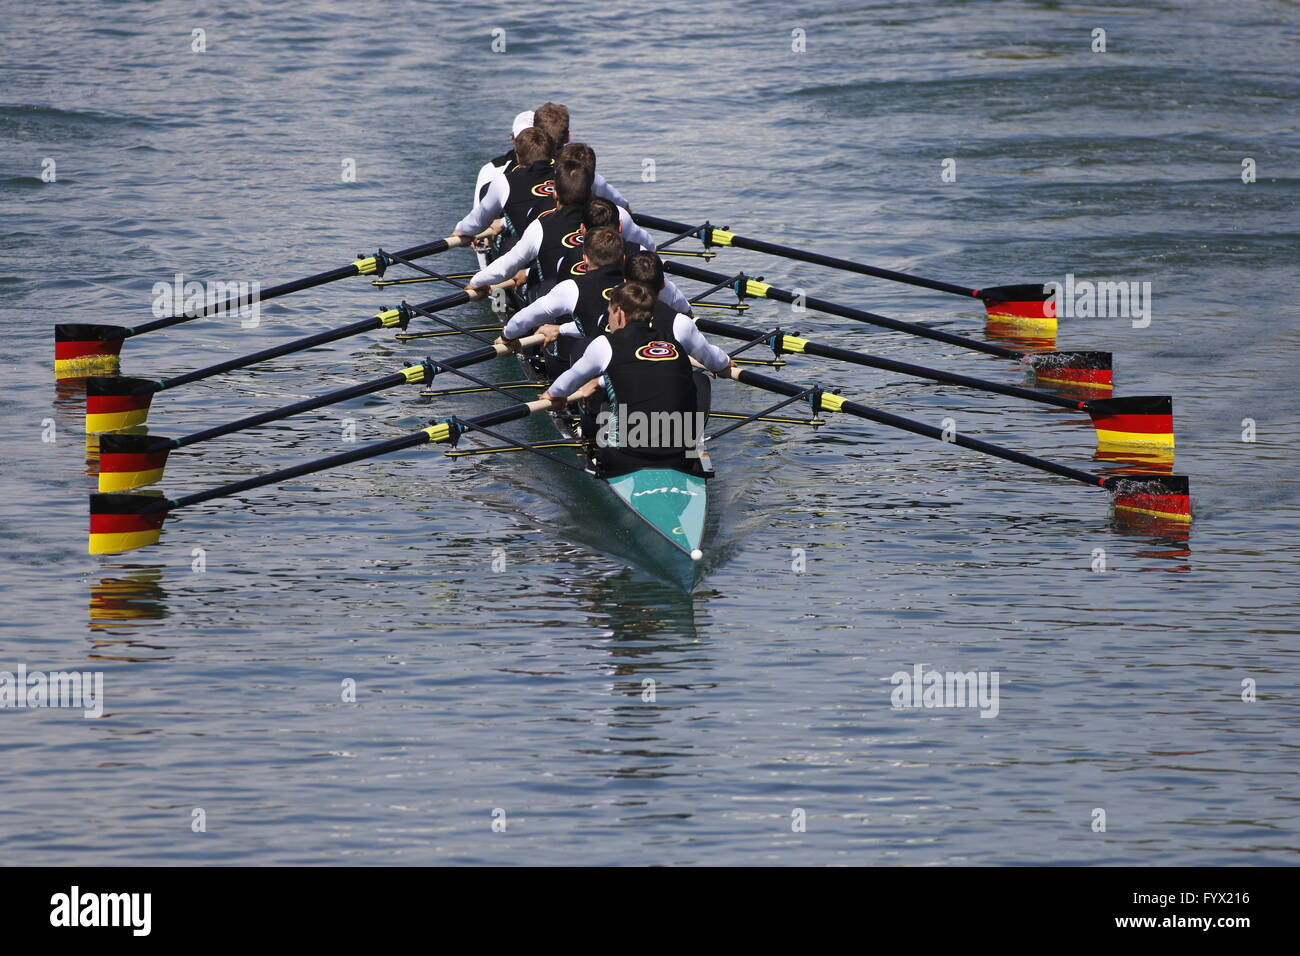 Dortmund, Germany. 28th Apr, 2016. The German men's Eight Olympic rowing team, including Martin Sauer, Hannes - Stock Image